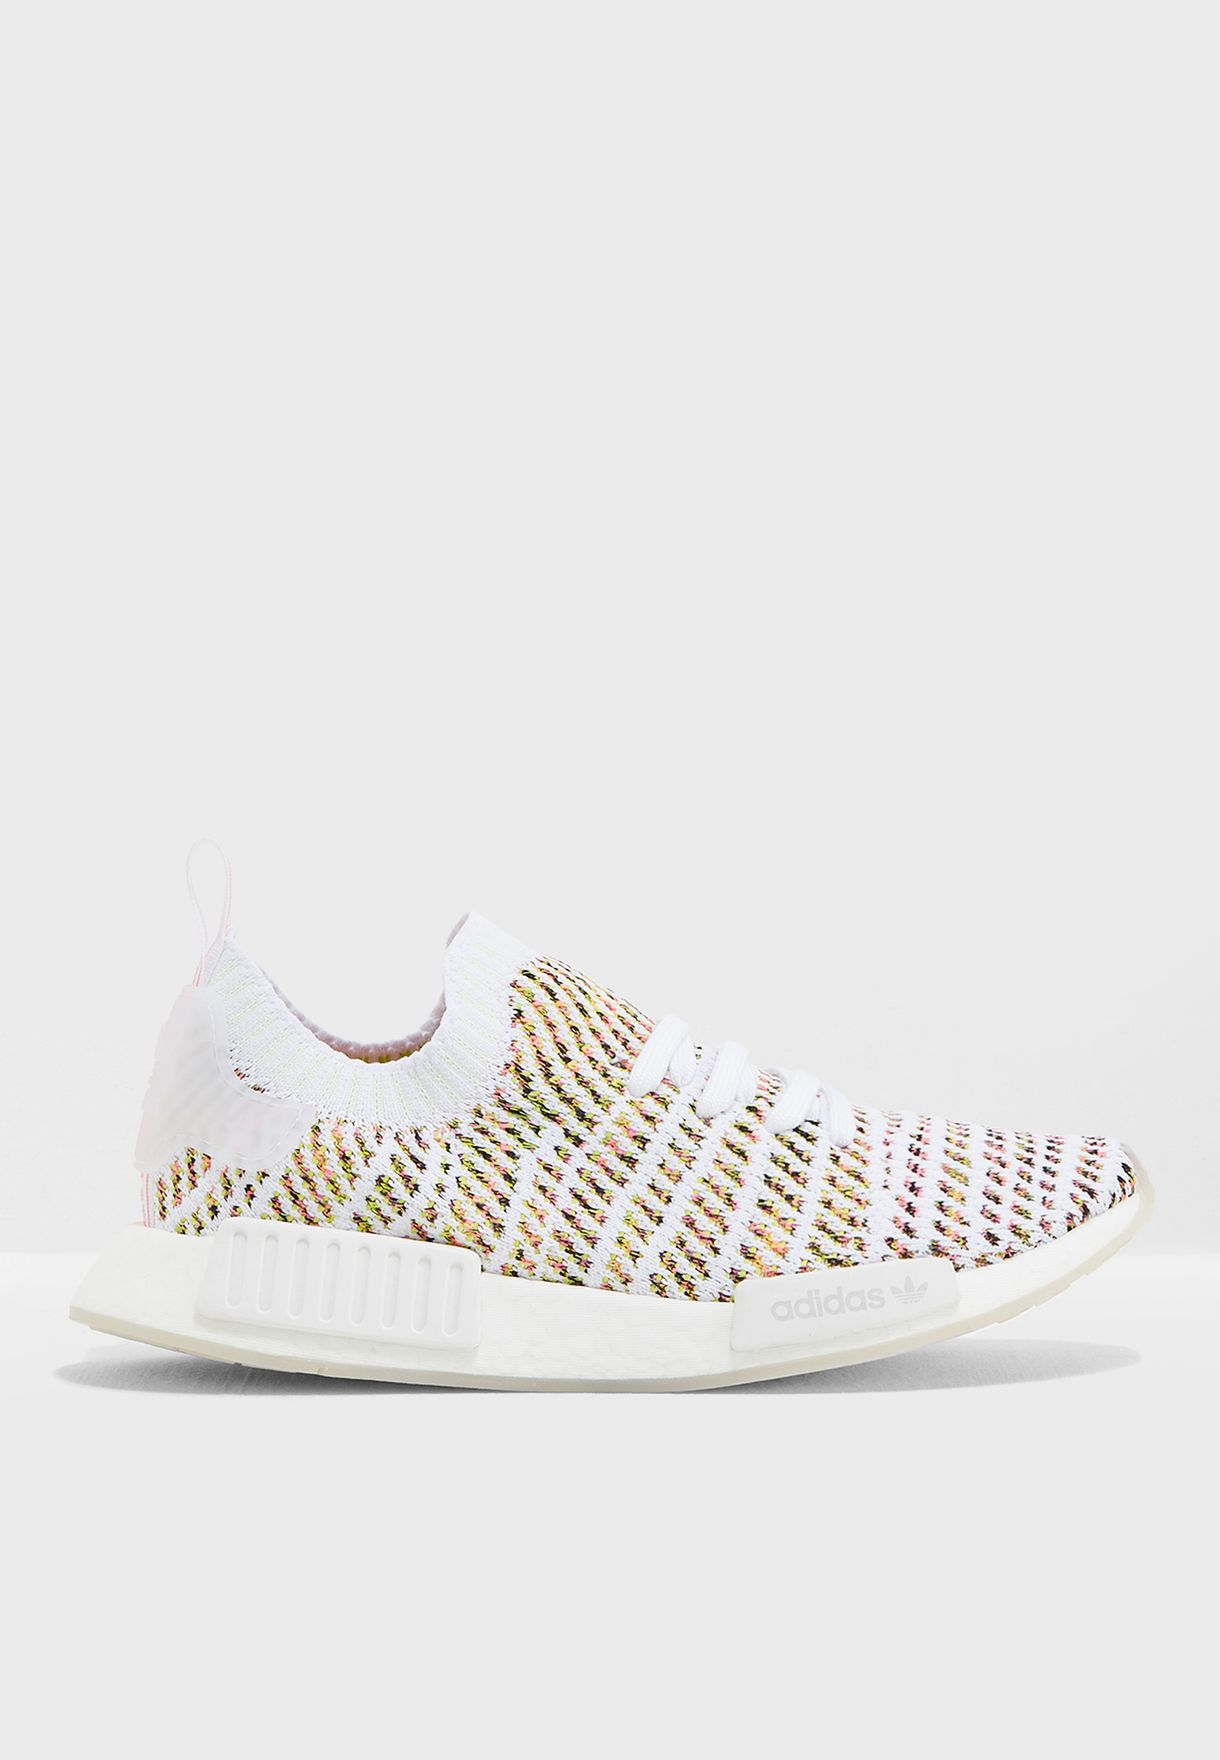 30b1d5a409620 Shop adidas Originals white NMD R1 STLT PK B43838 for Women in Saudi ...